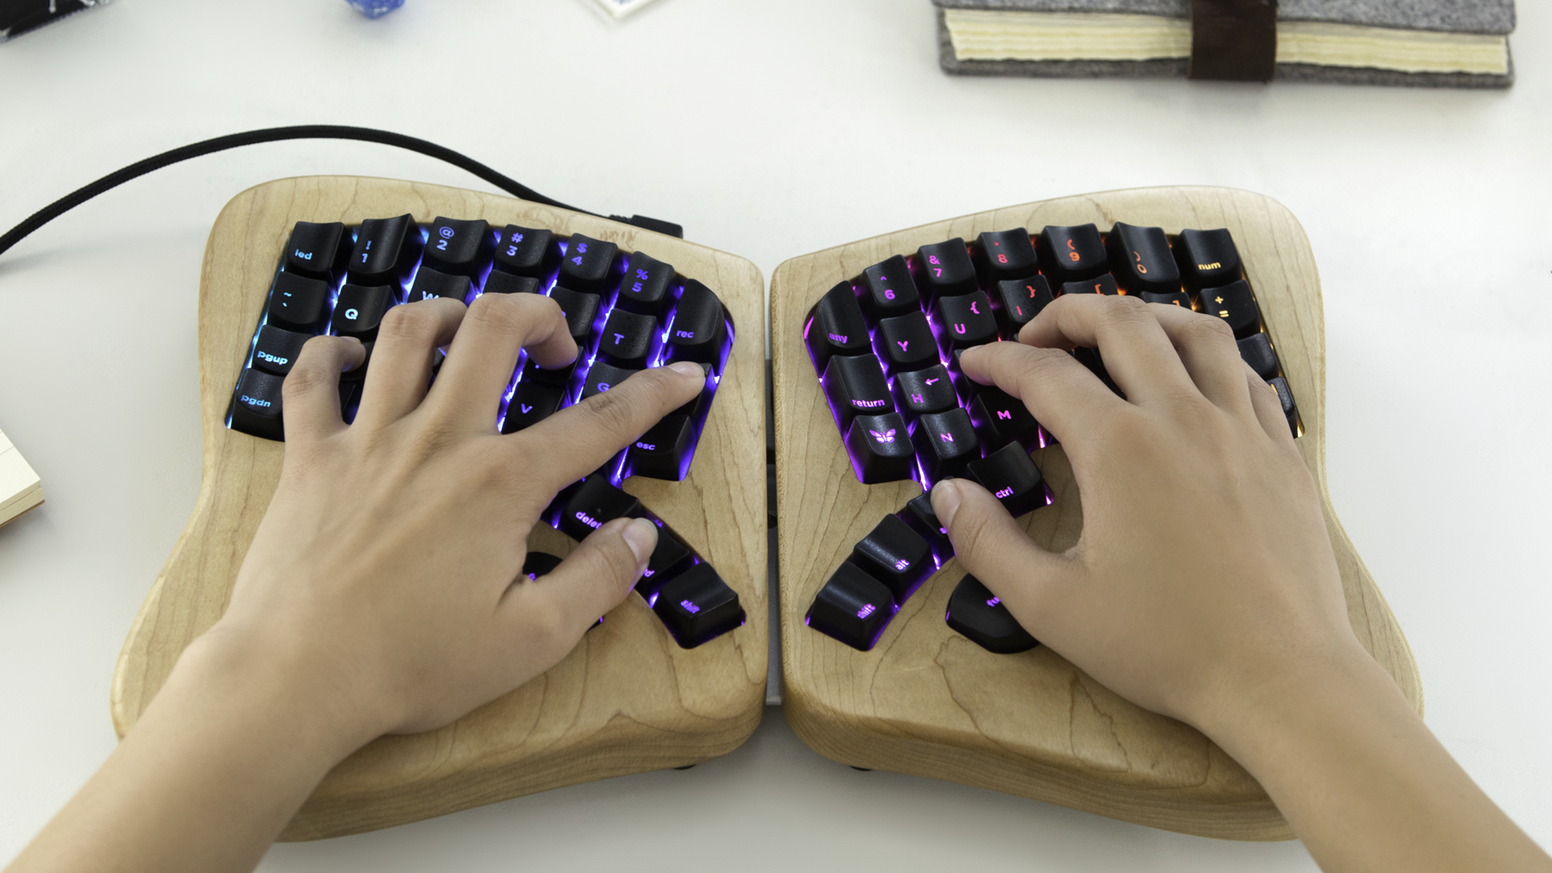 DIY!! 3D Printed Ergonomic Keyboards for the Uncompromising